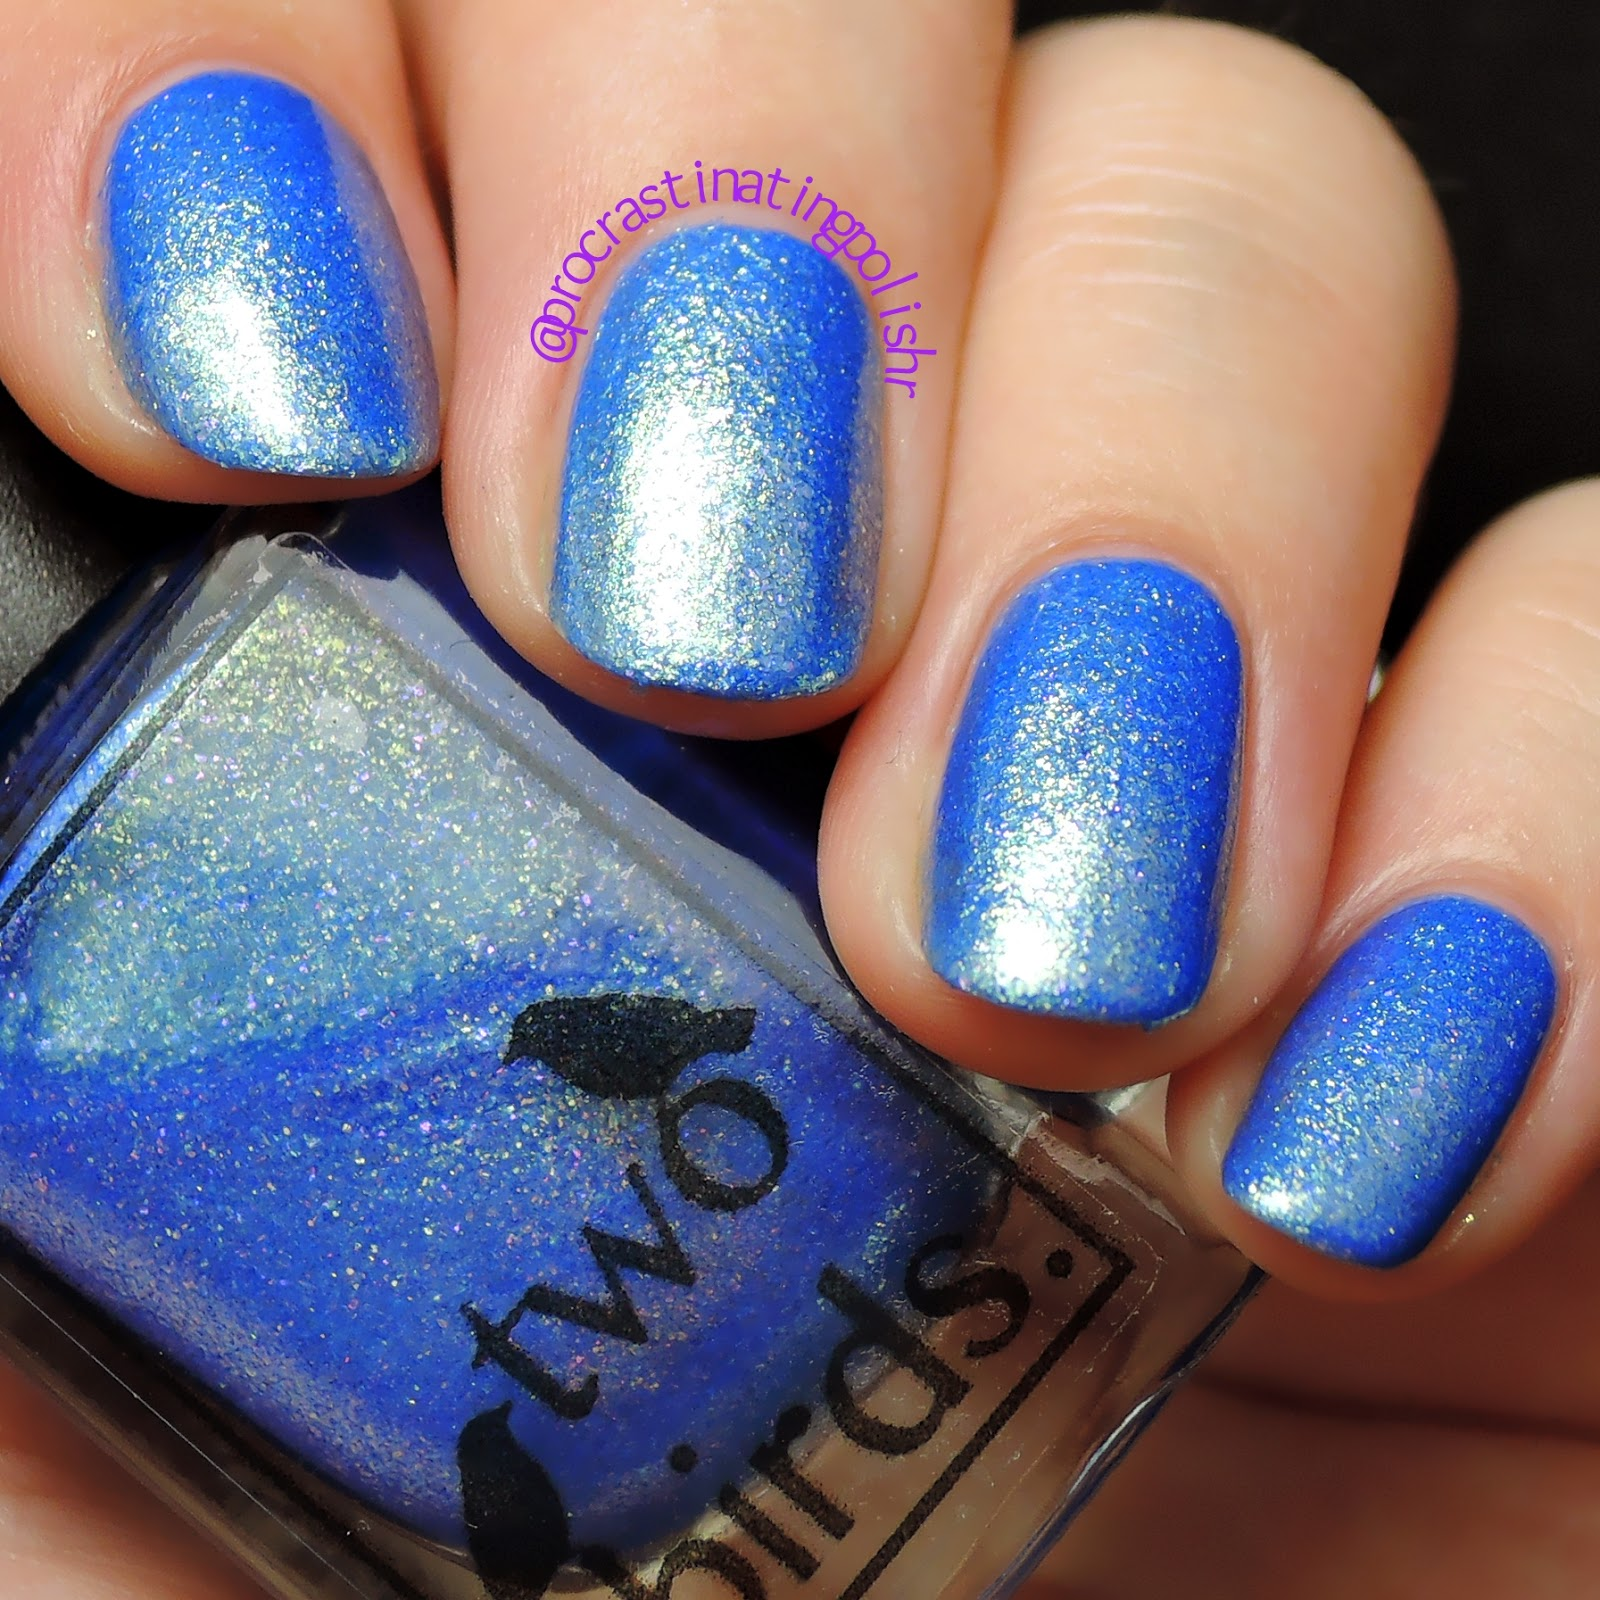 Two Birds Lacquer - Afternoon Swim